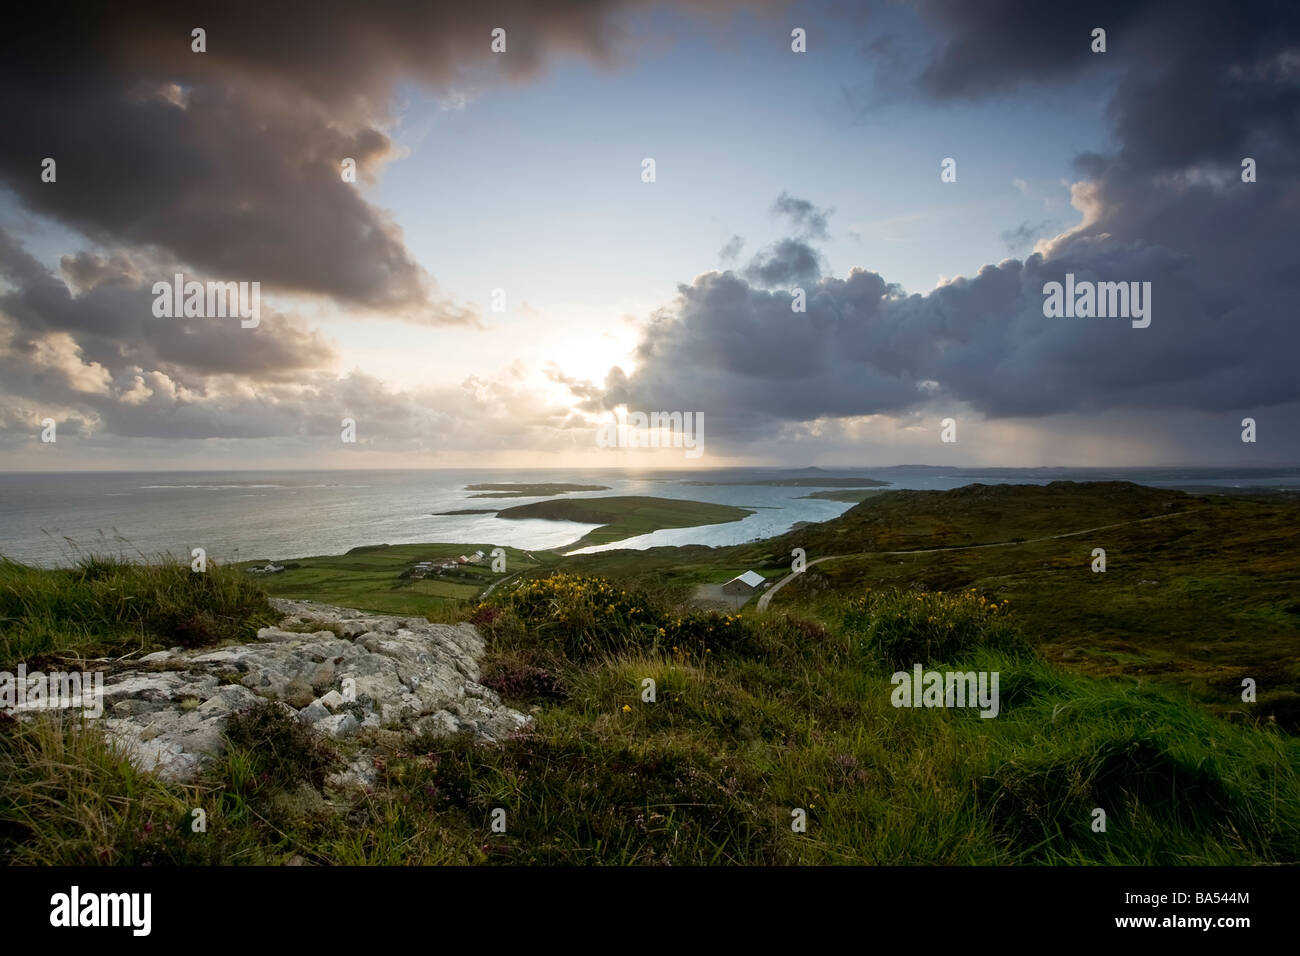 view over looking the west of ireland near the town of Clifden in the heart of conneamara County Galway at sunset Stock Photo